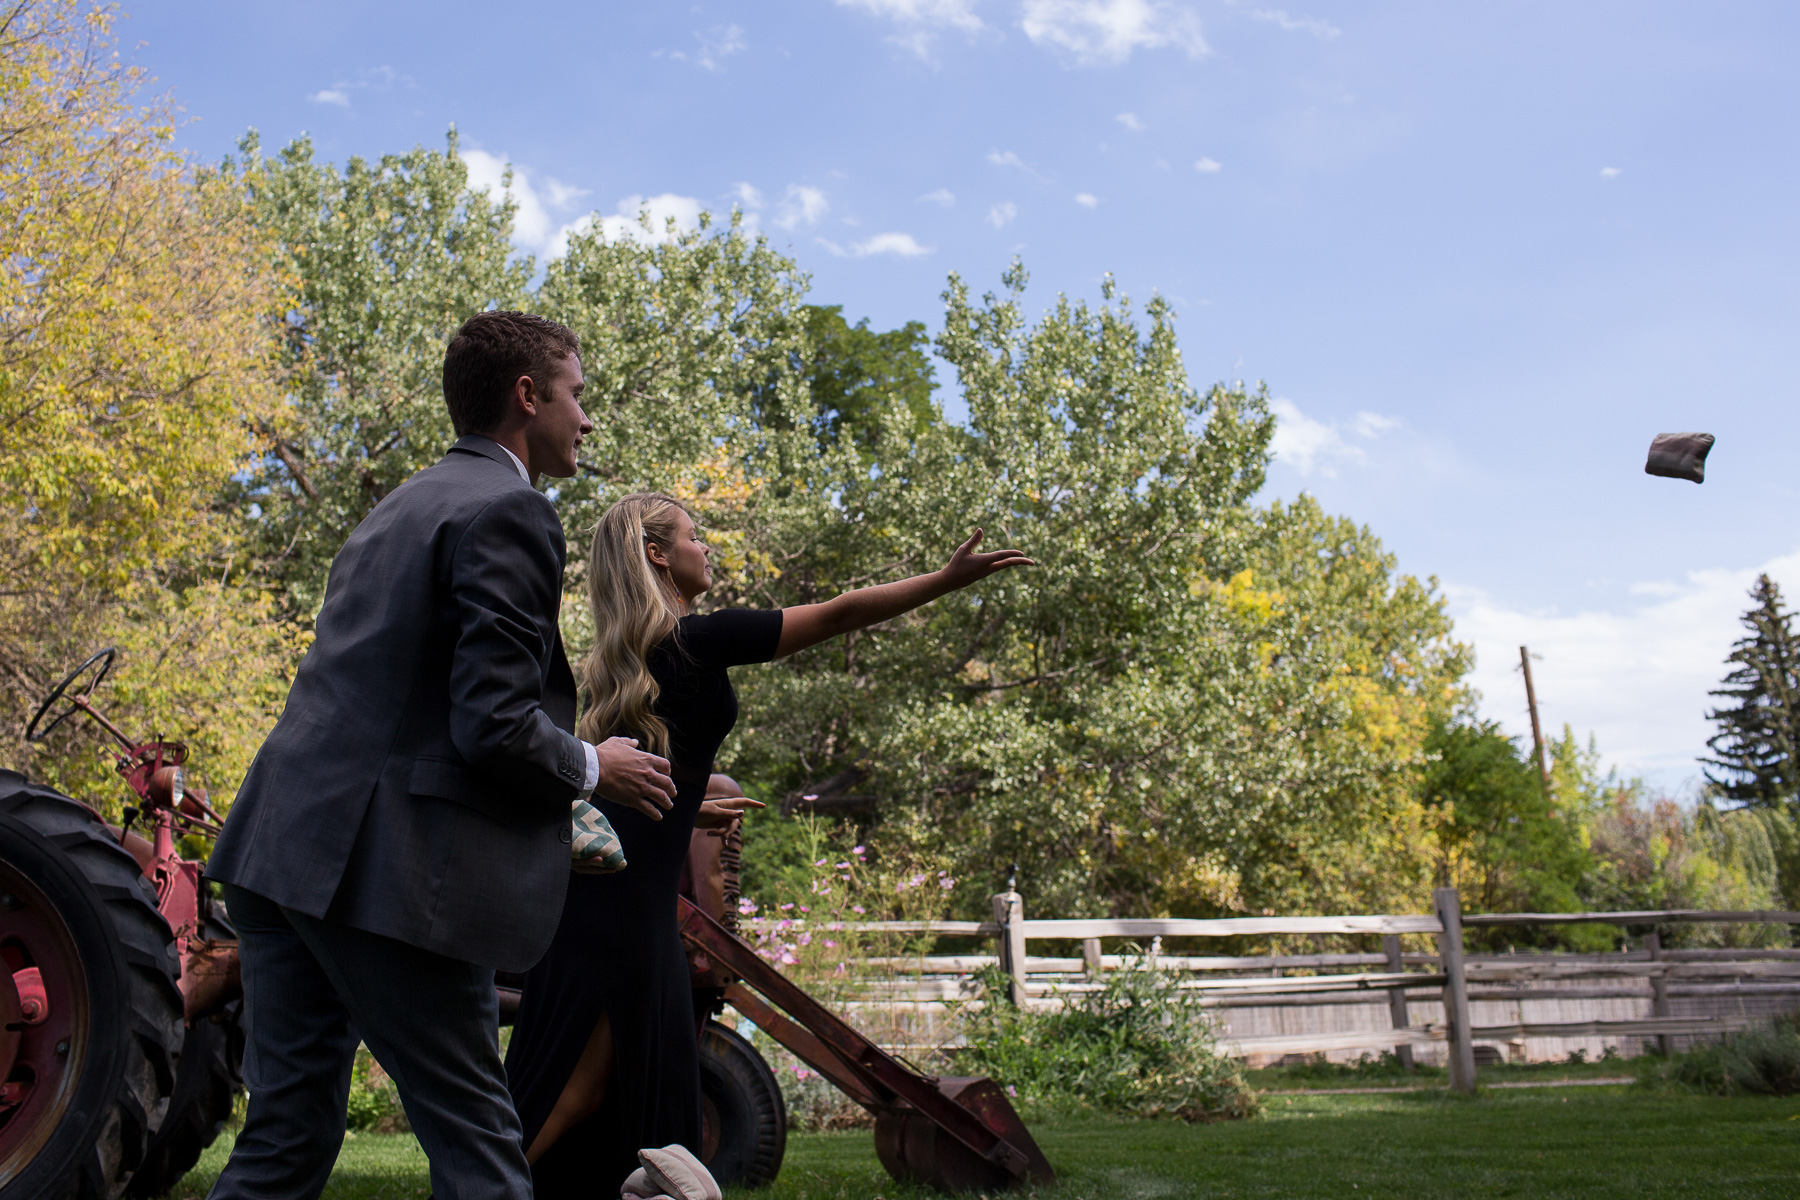 A female wedding guest tossing a corn hold bean bag on a farm with a male guest